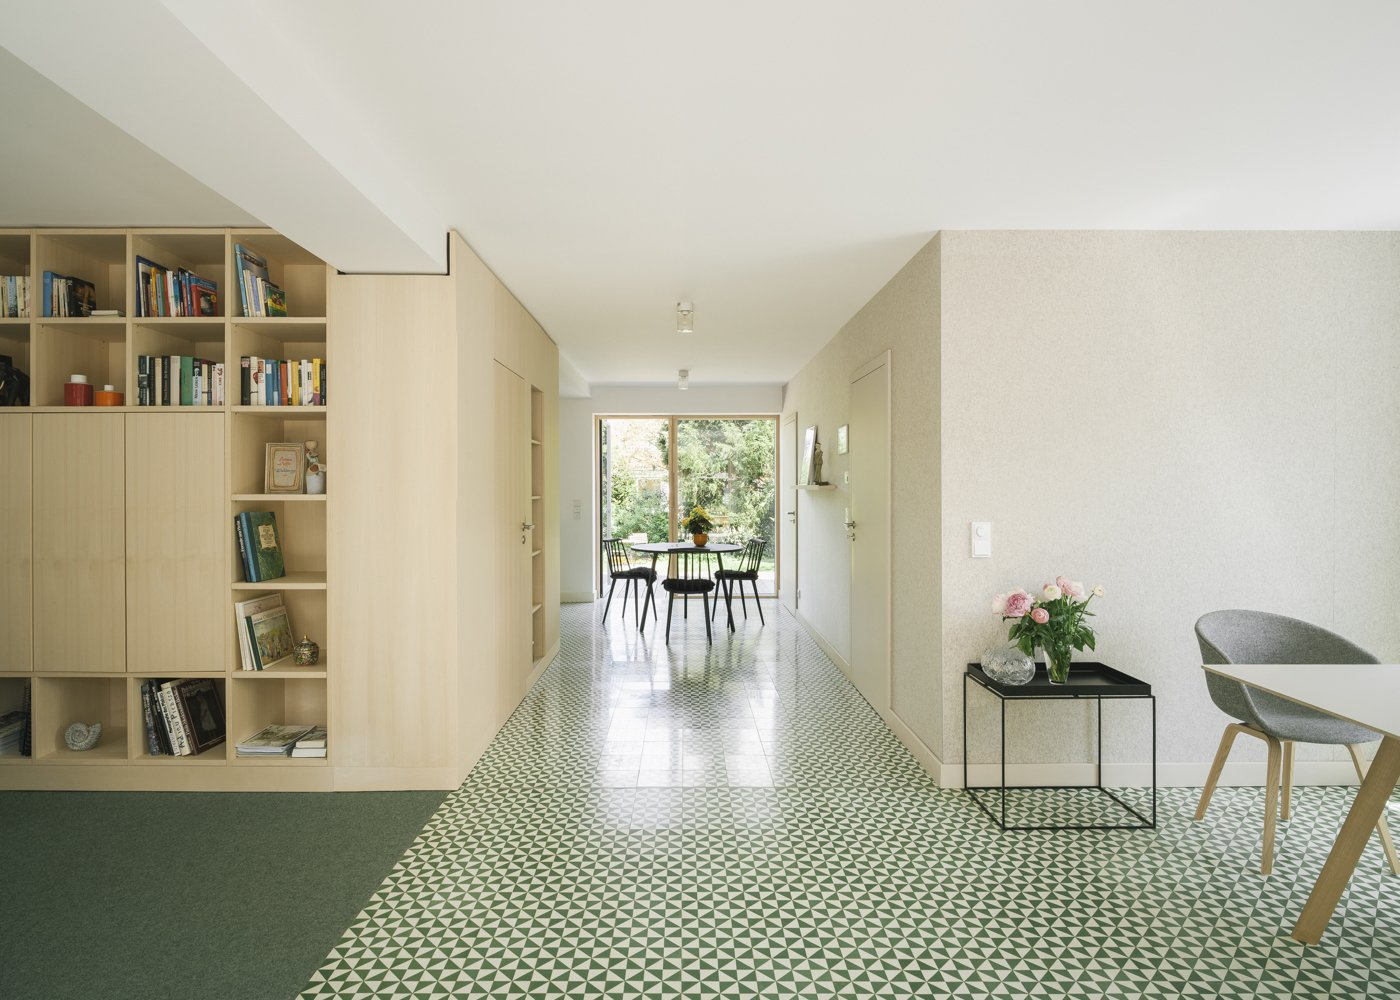 Cement Tile Floor, Carpet Floor, Shelves, Storage, Chair, and Dining Room open plan living room  Haus Mai by Project Architecture Company